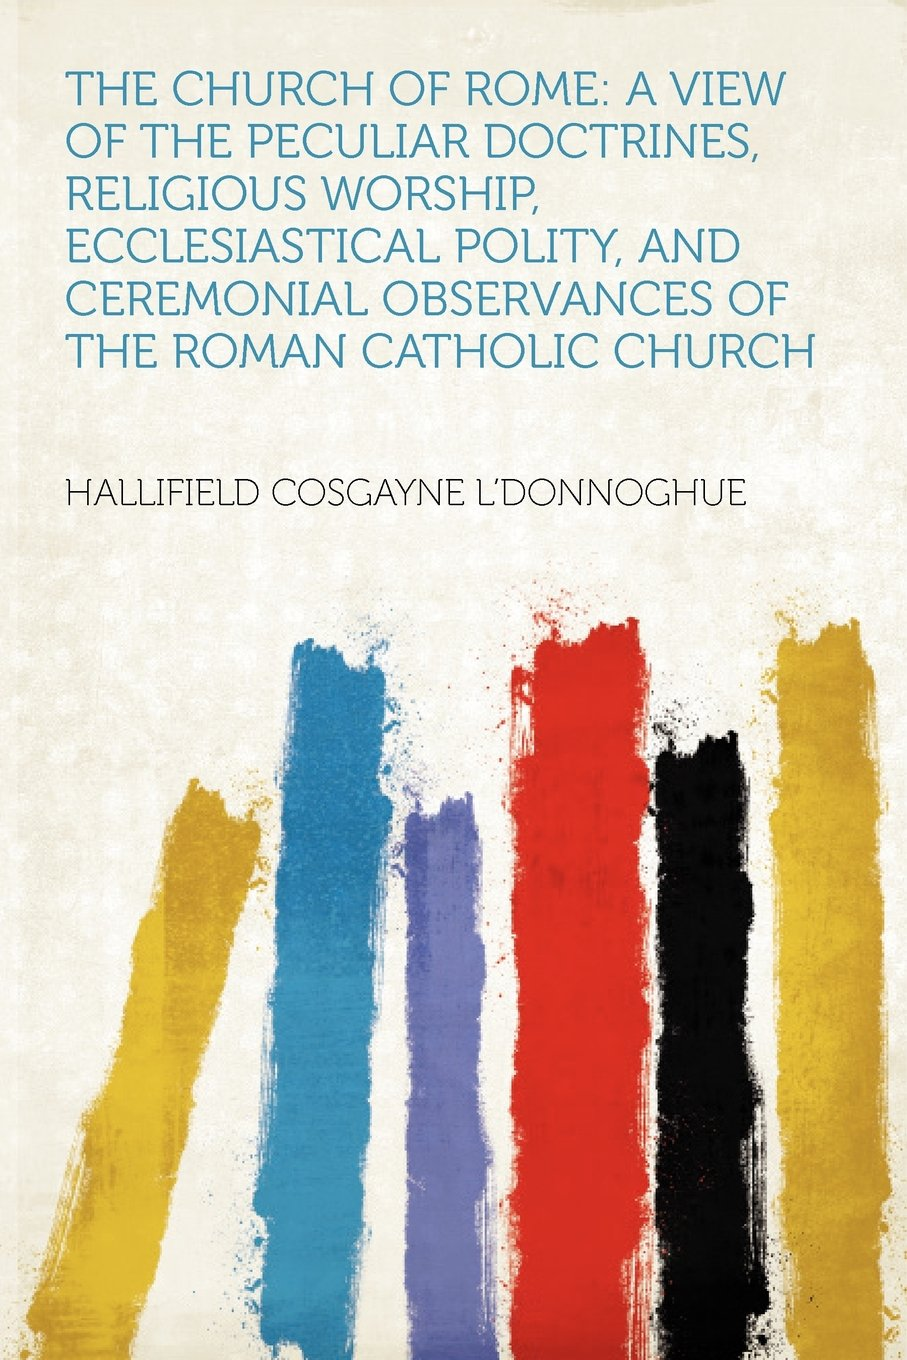 The Church of Rome: a View of the Peculiar Doctrines, Religious Worship, Ecclesiastical Polity, and Ceremonial Observances of the Roman Catholic Church PDF